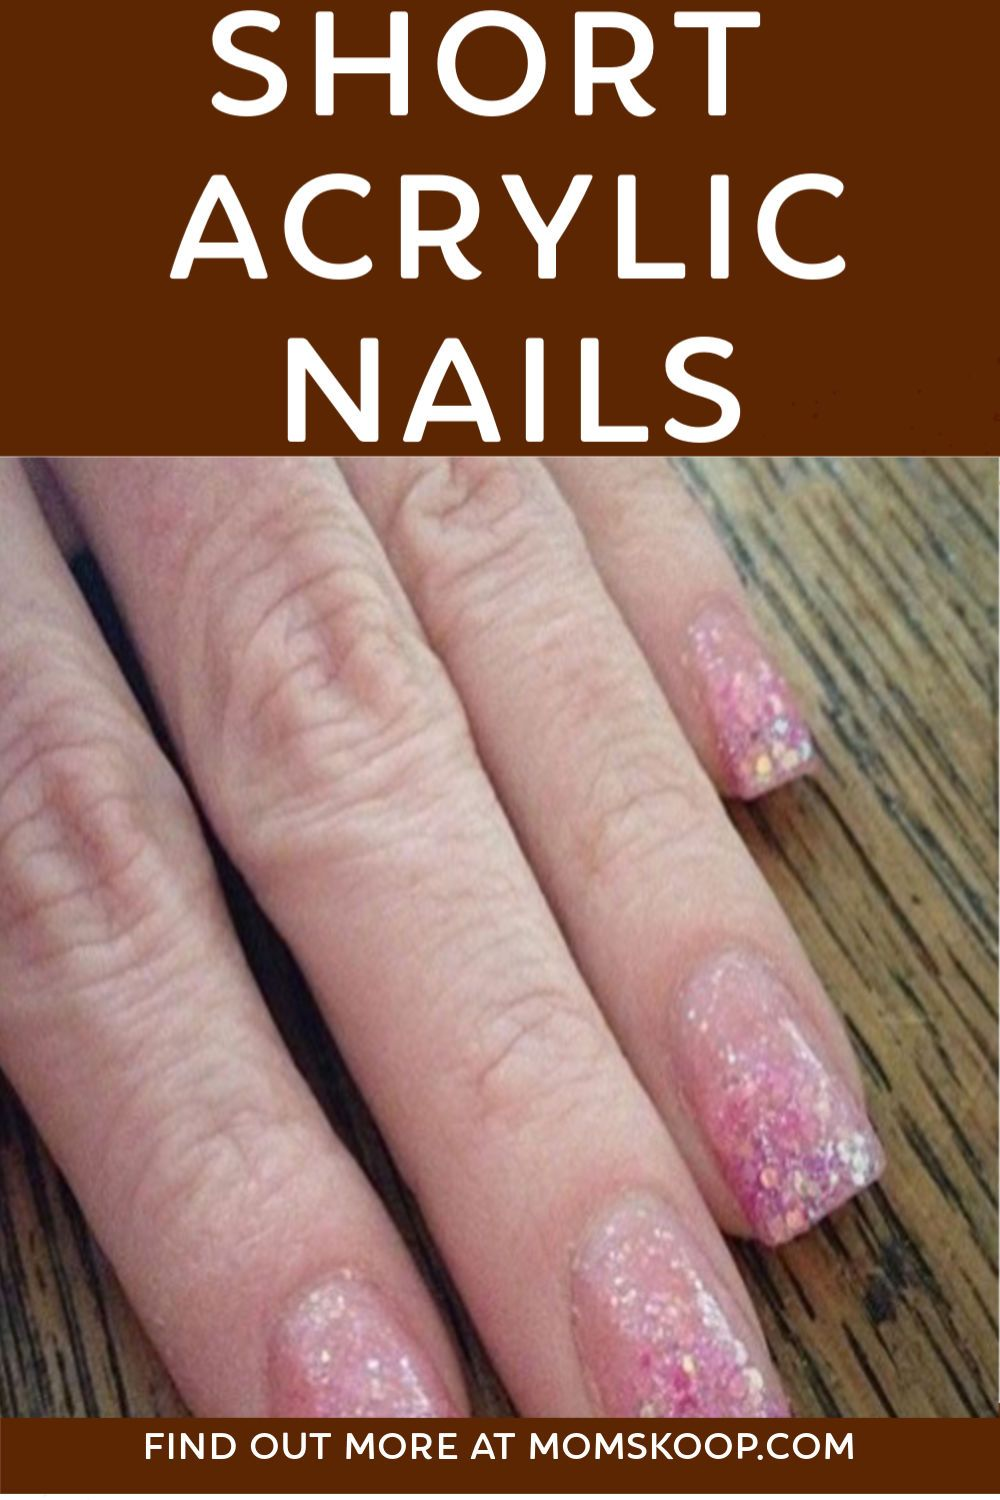 Diy Acrylic Nails Are Easier Then You Think To Do At Home The Best Part About Doing Your Nails At Home Is In 2020 Diy Acrylic Nails Acrylic Nails Short Acrylic Nails